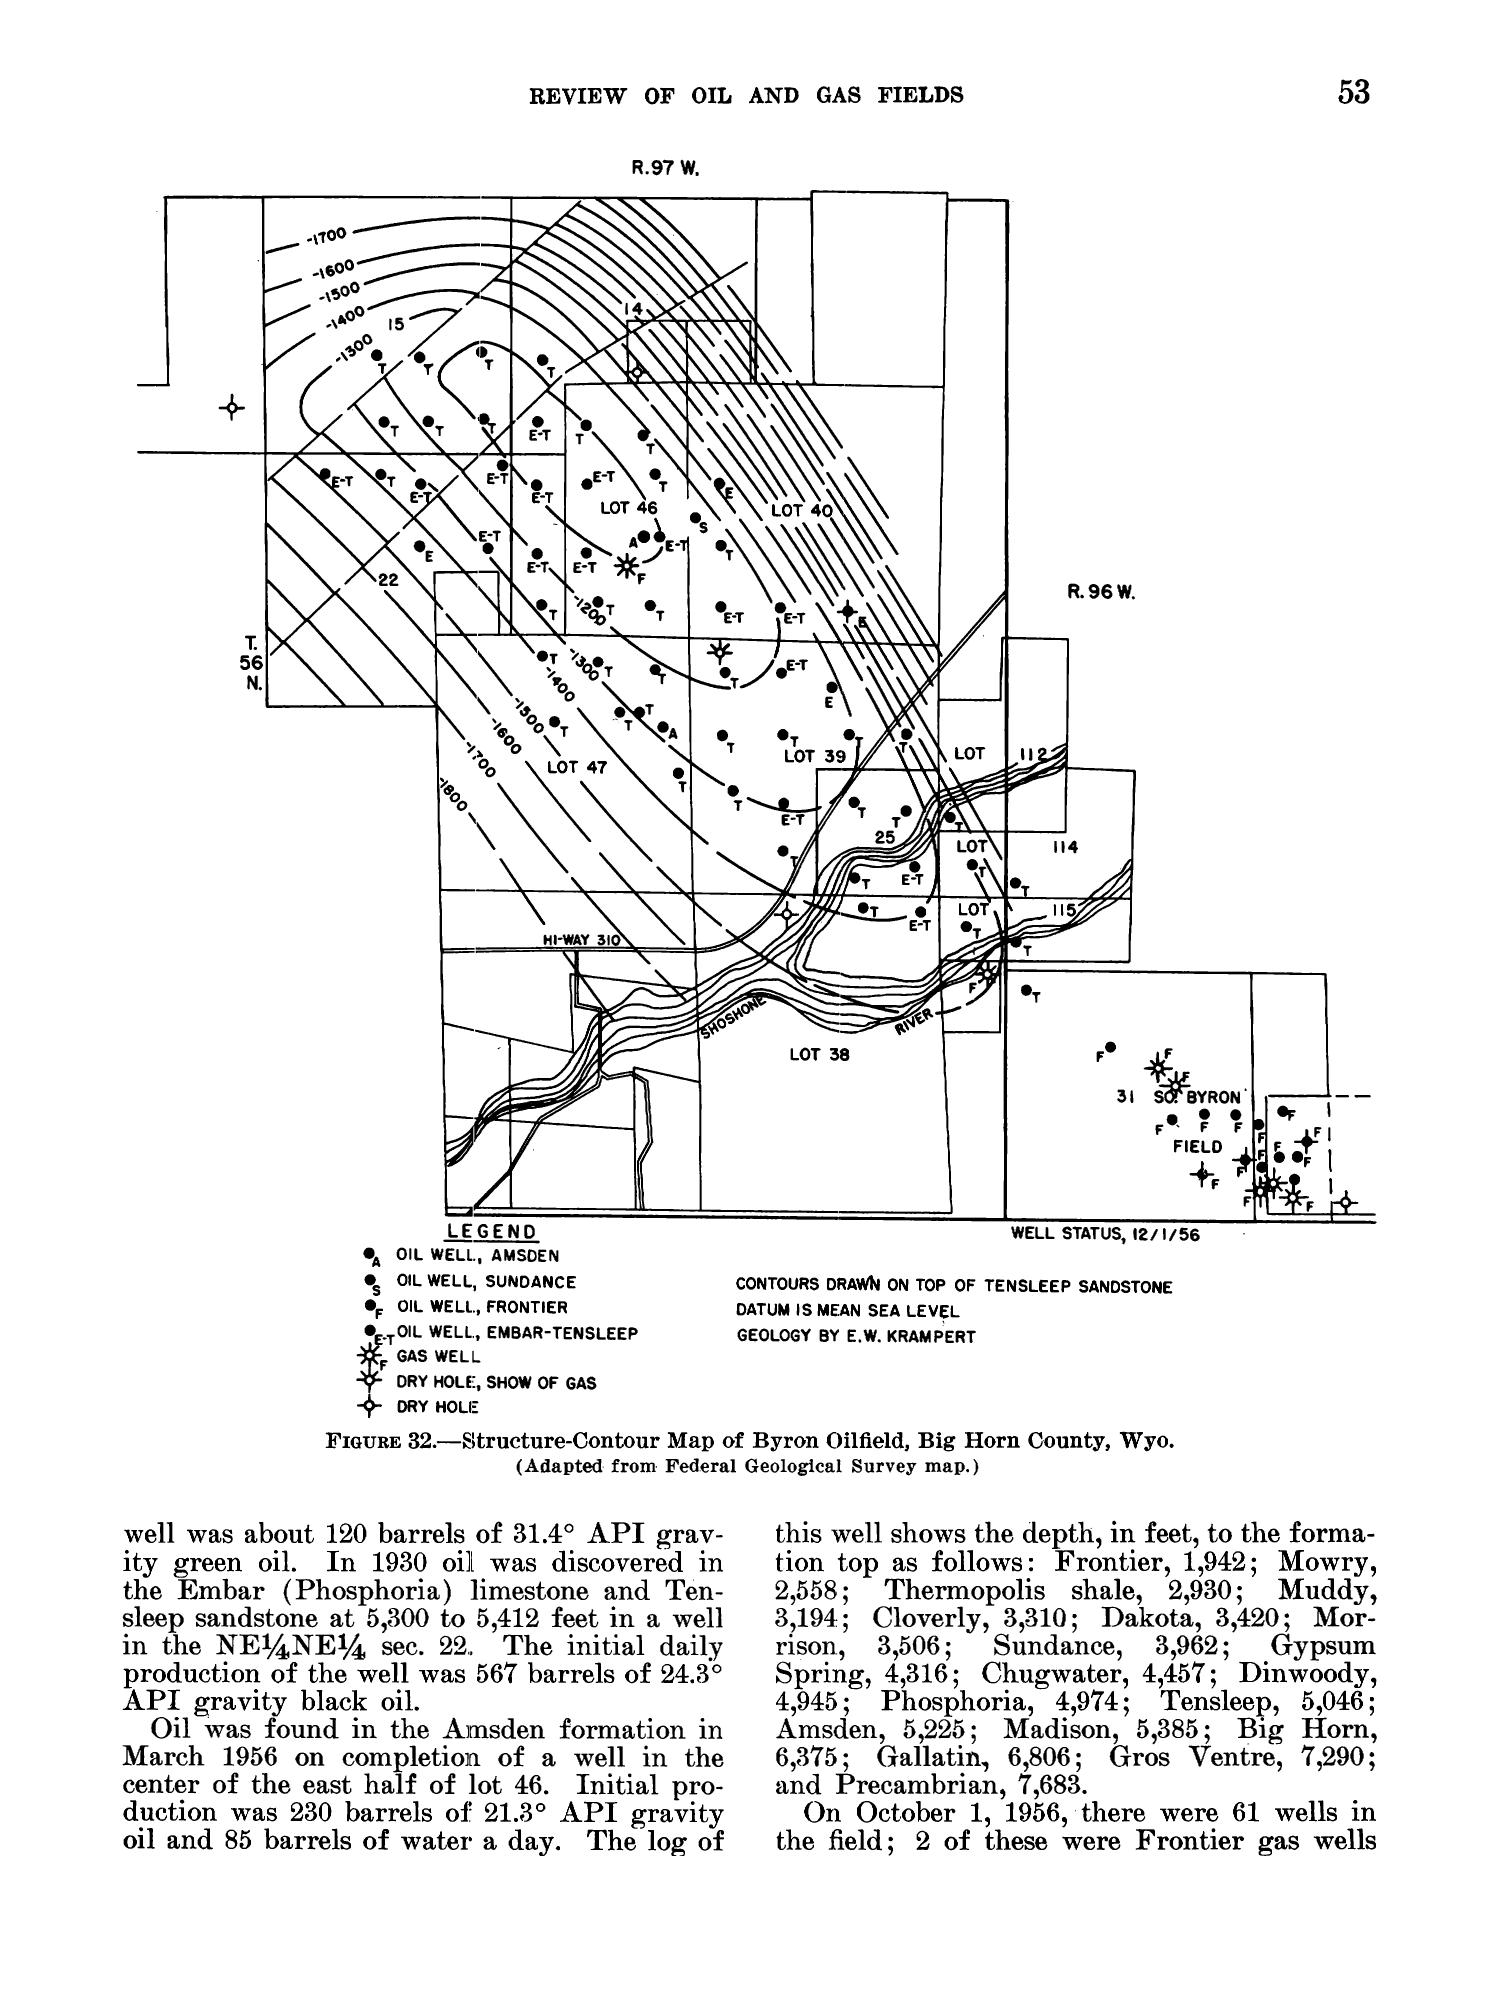 Petroleum and Natural Gas Fields in Wyoming                                                                                                      53